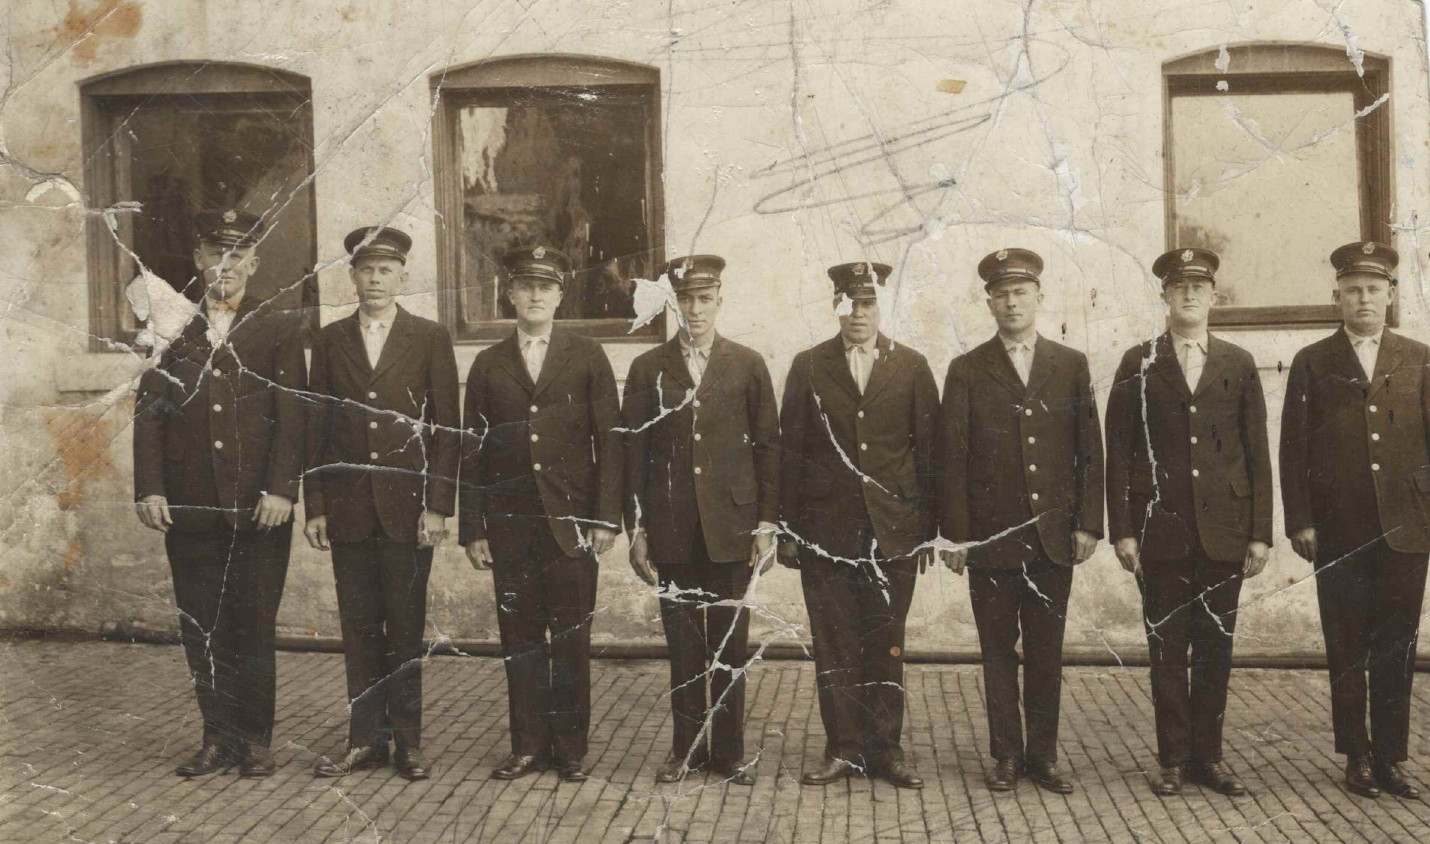 Otto Shelton (4th from left) when he worked for the fire department.